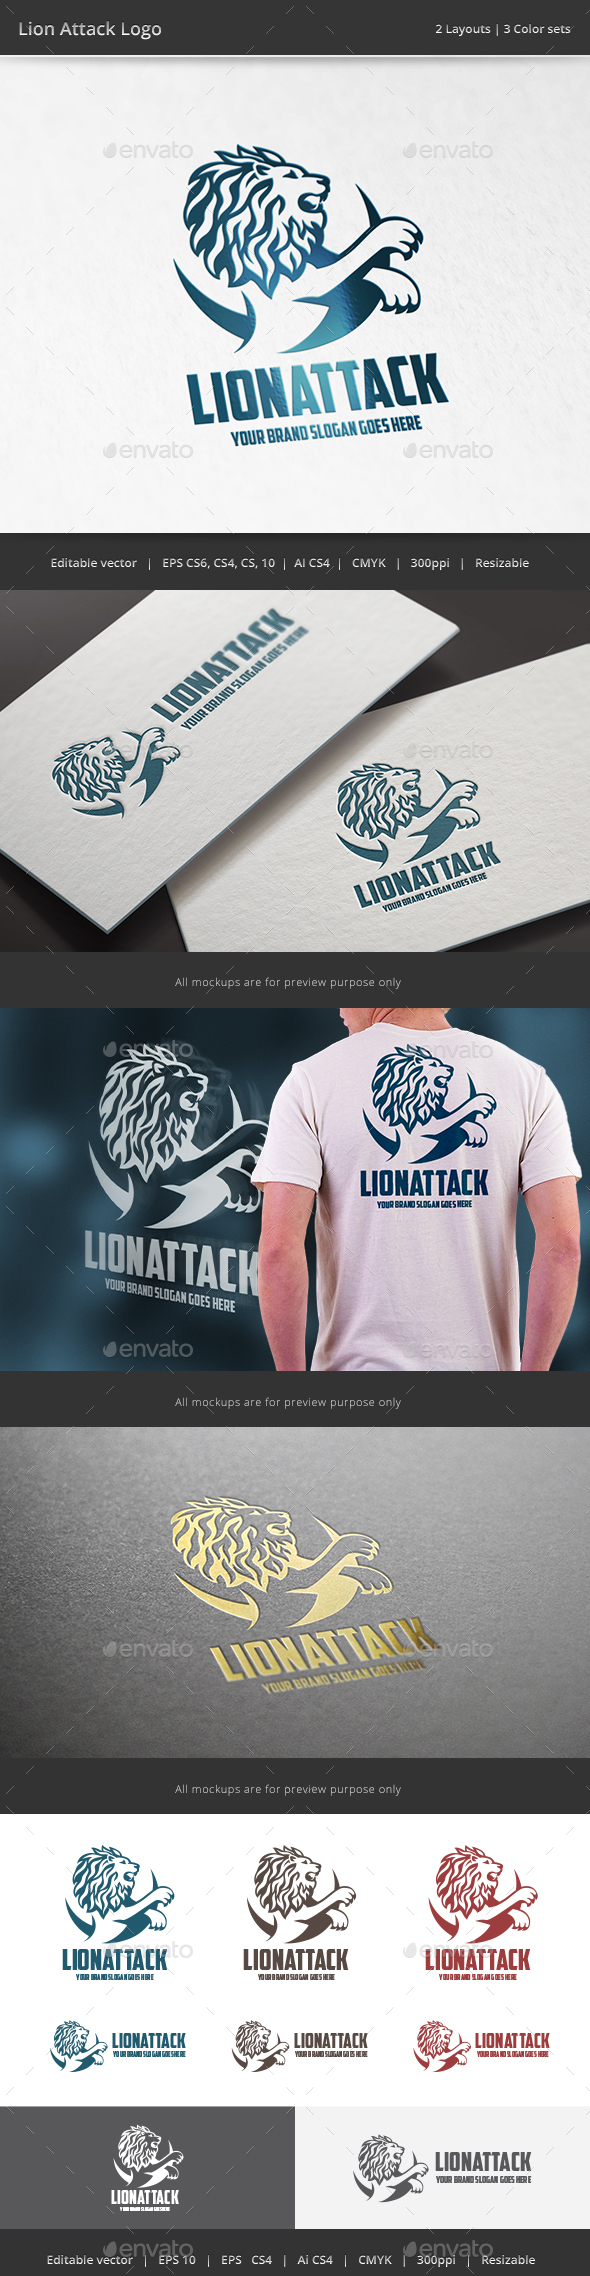 Lion Attack Logo